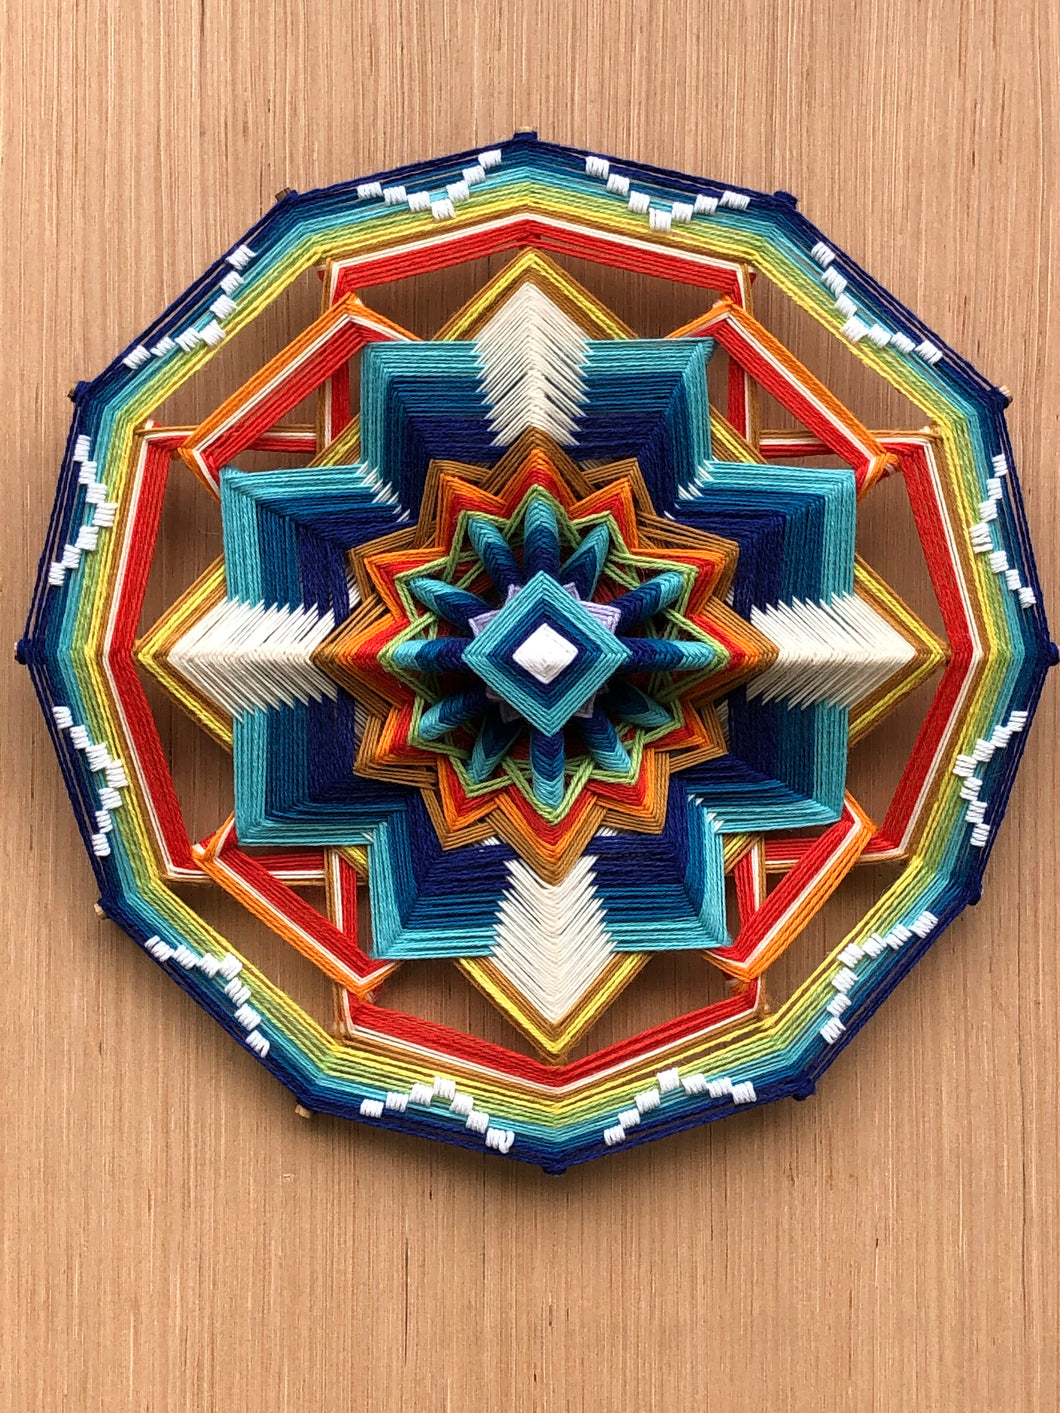 Guide to lighten our path, 18 inch Mandala